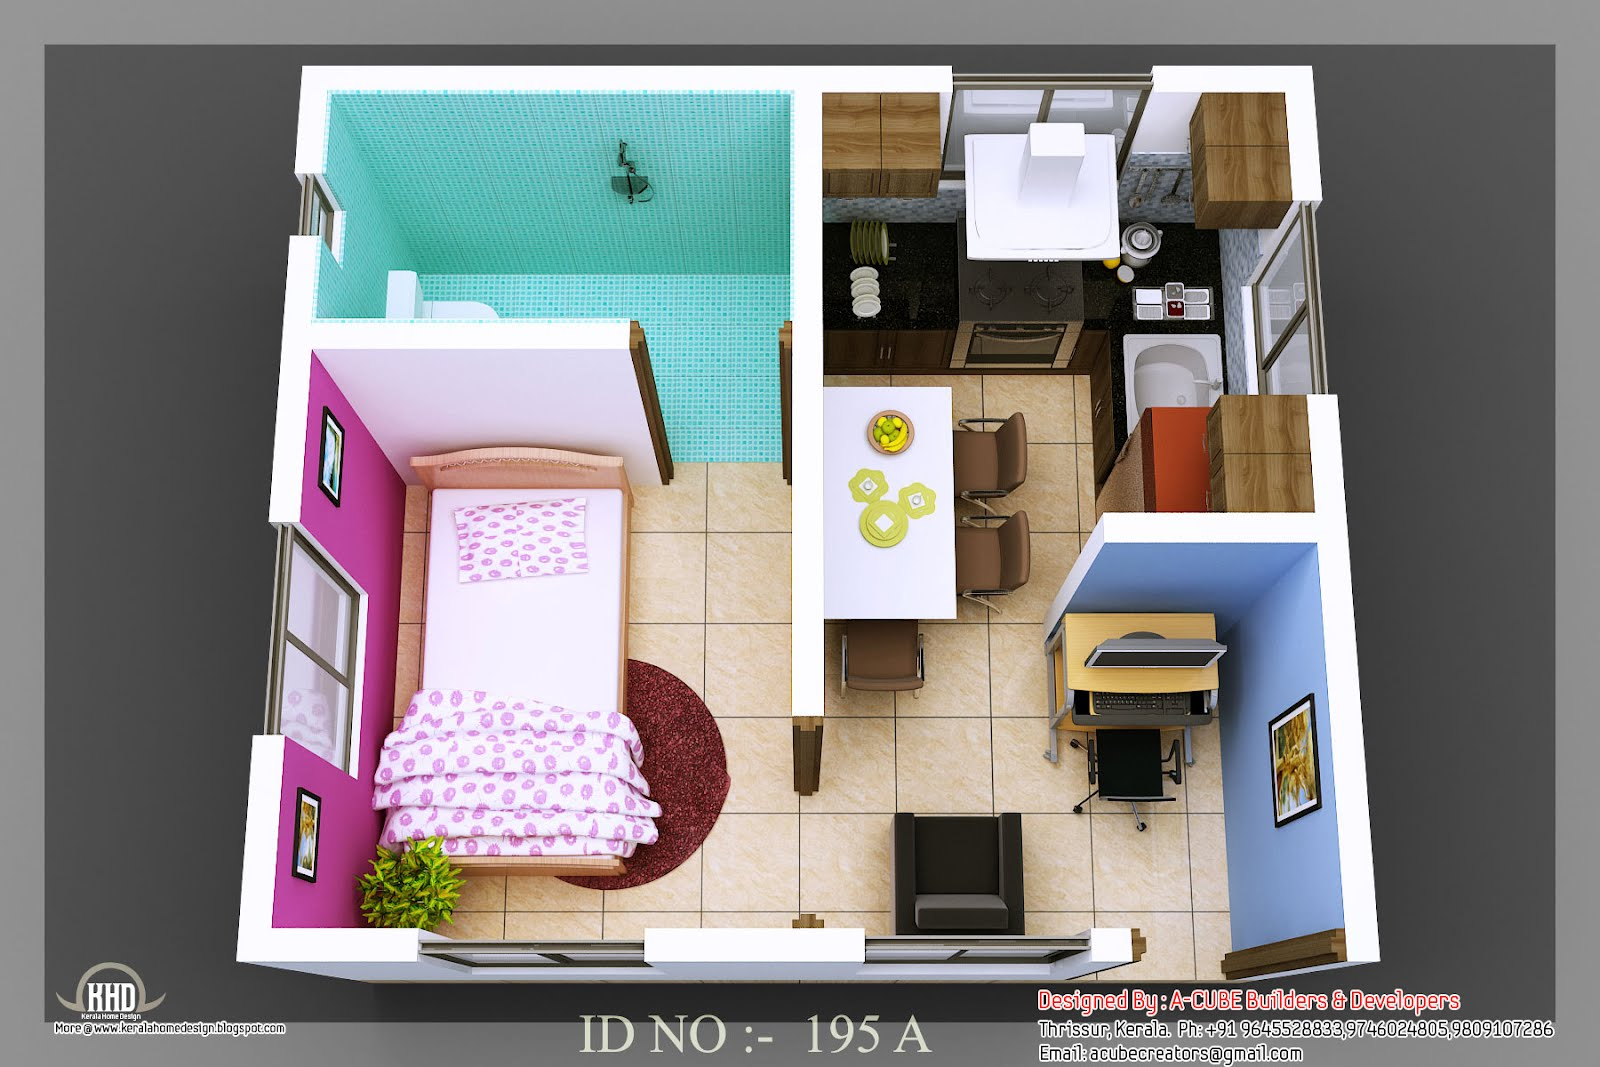 3D isometric views of small house plans title=